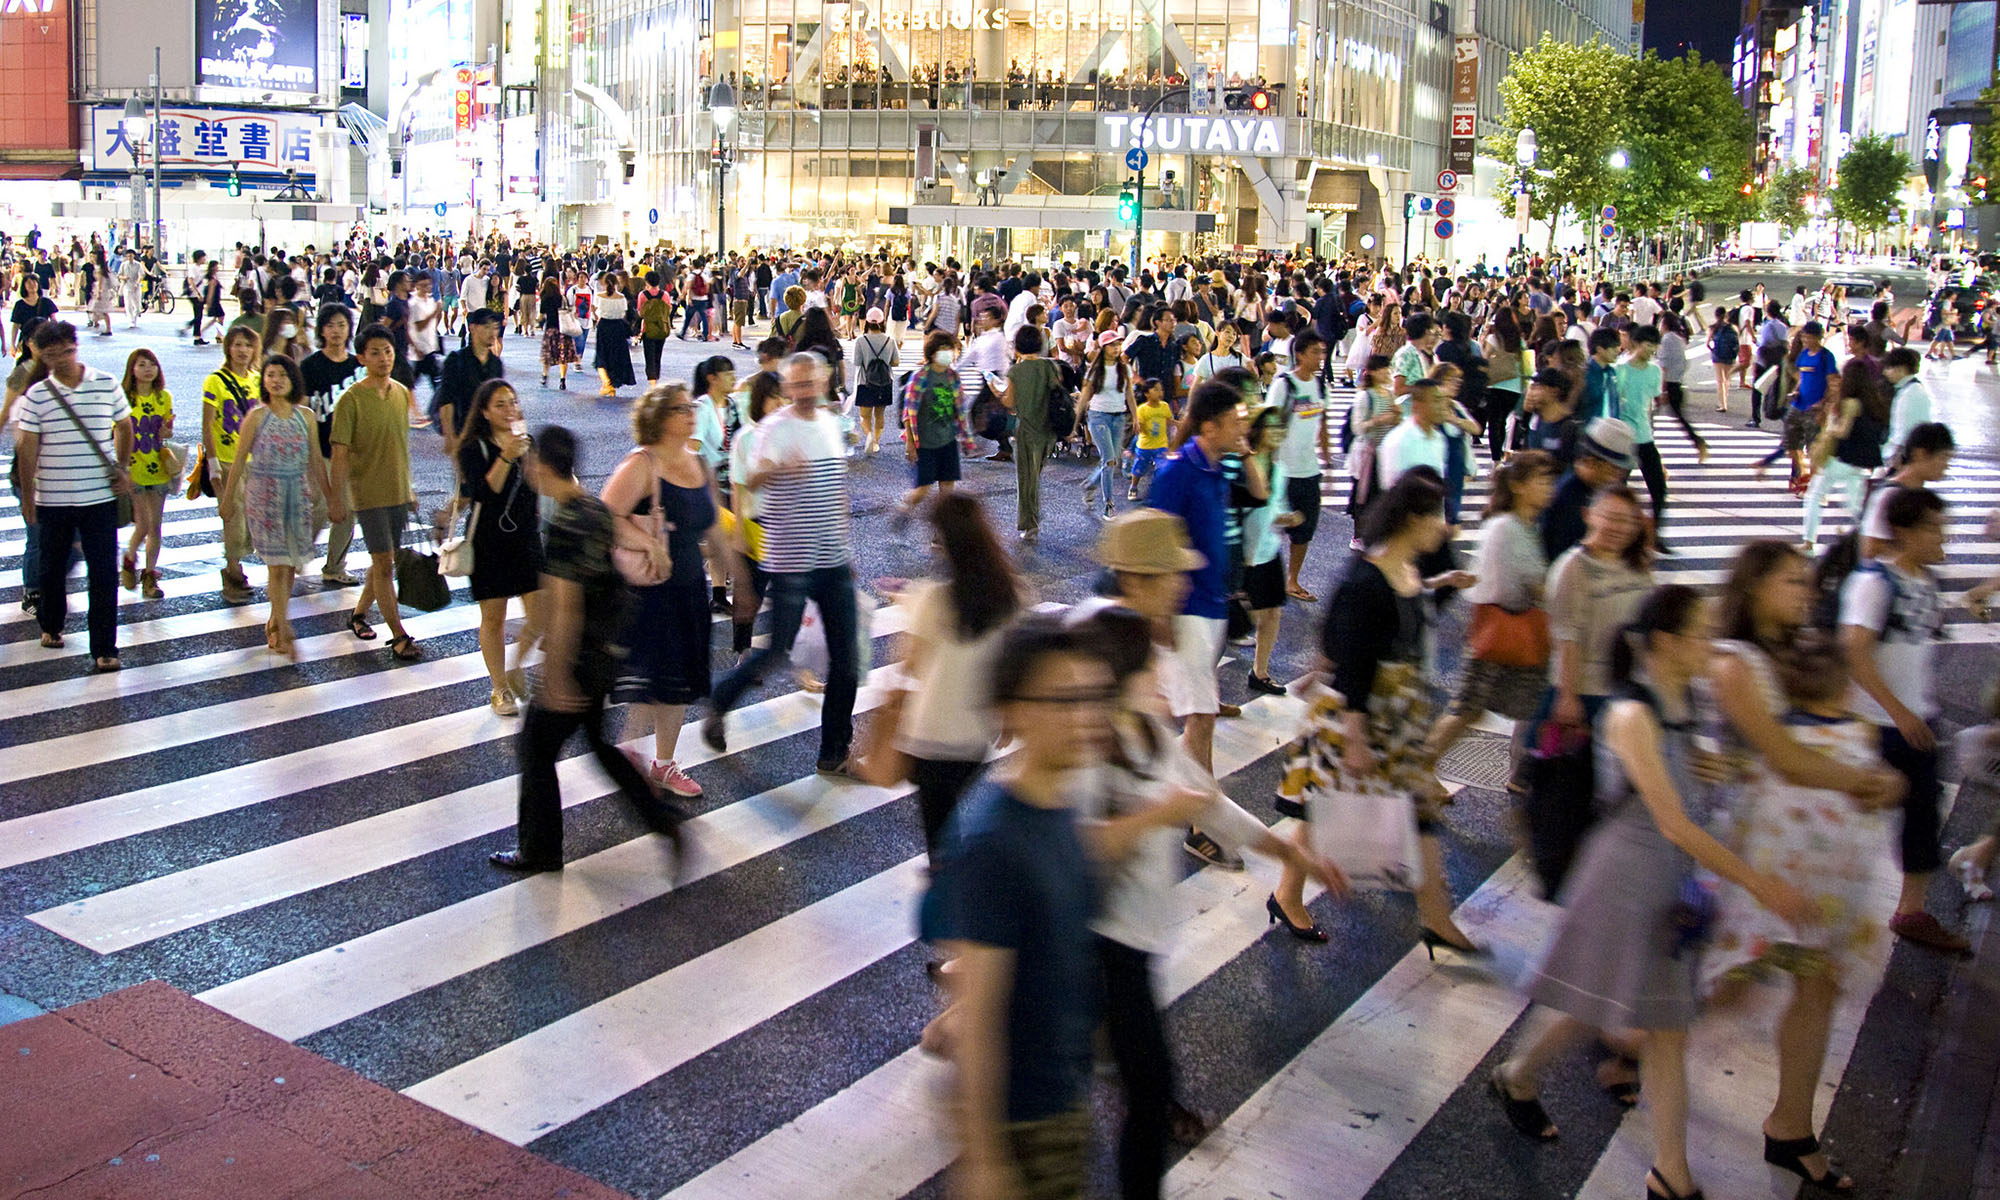 Pedestrian scramble, Shibuya, Tokyo (By Dimitry B. used under Creative Commons license CC BY 2.0.)